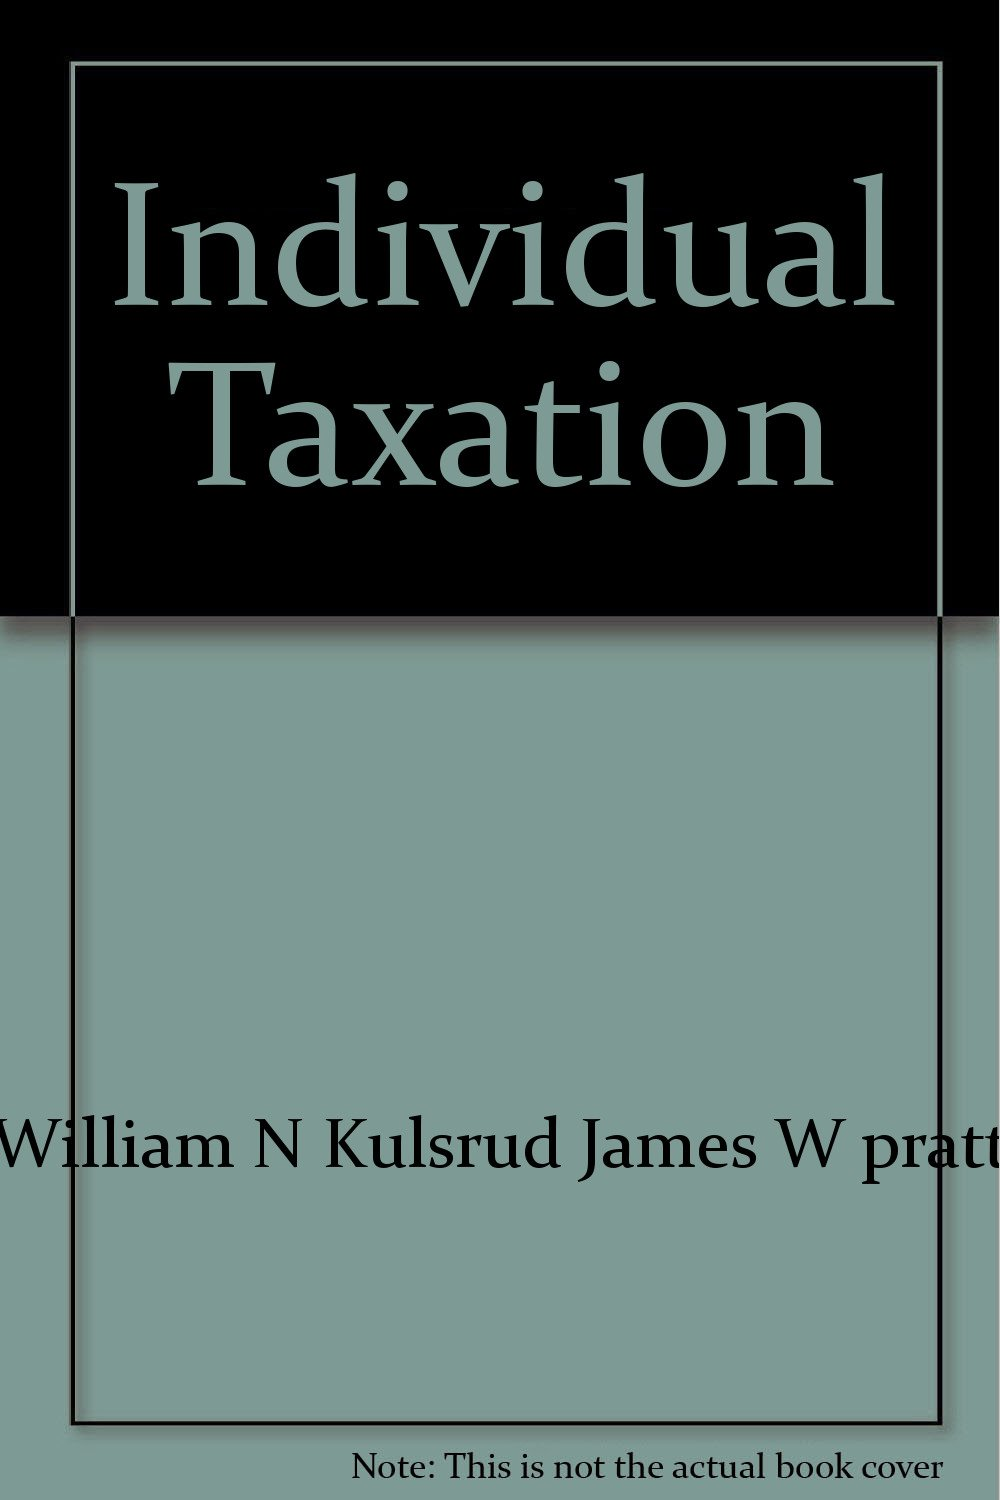 Individual Taxation William Kulsrud James product image